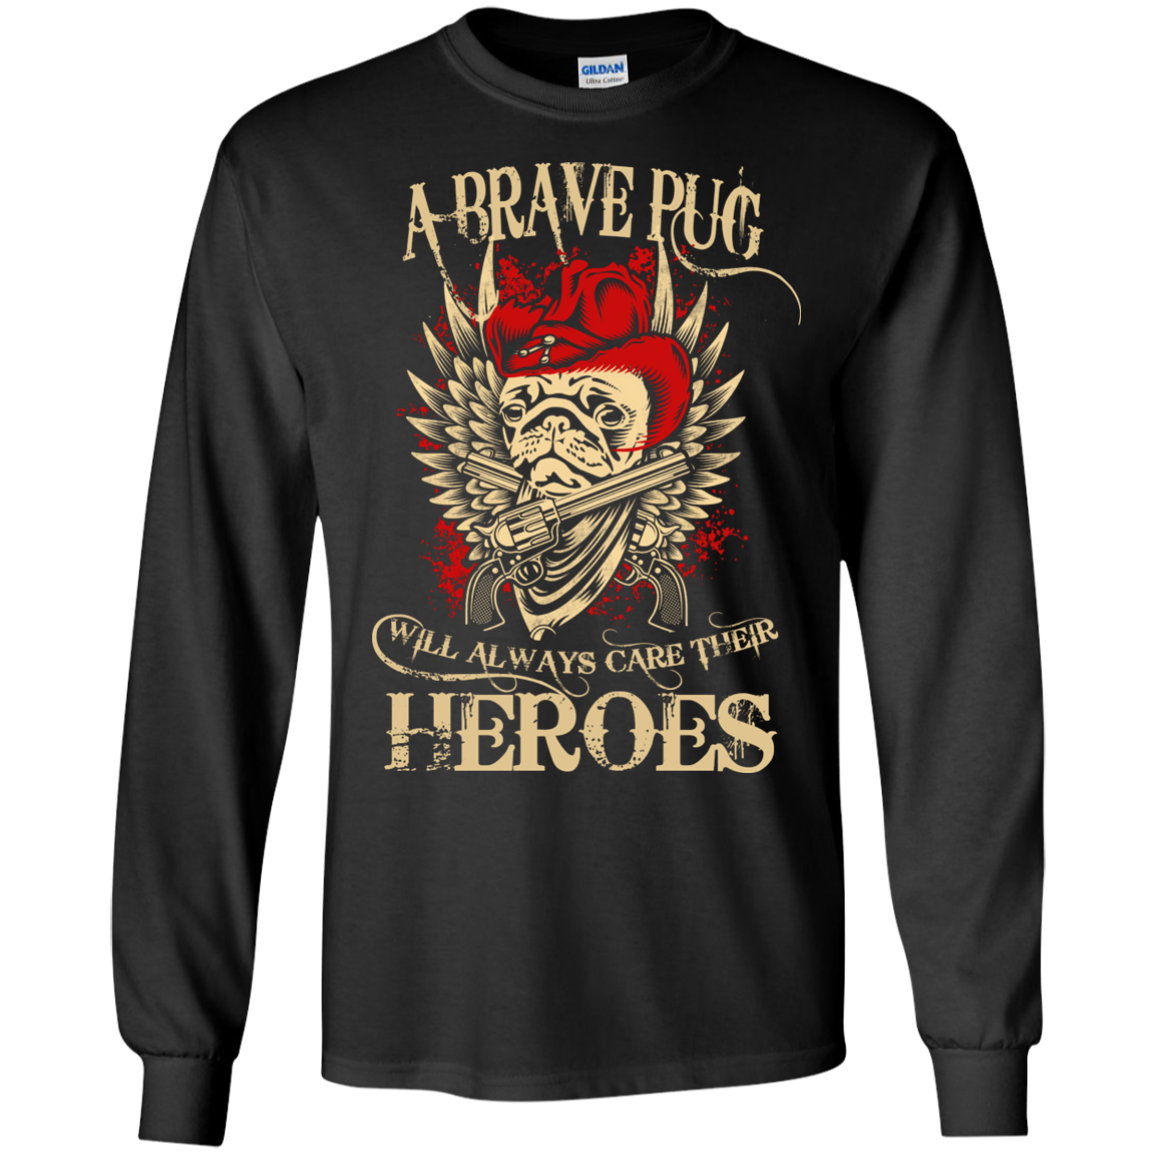 A BRAVE PUG WILL ALWAYS CARE THEIR HEROES T-Shirt & Hoodie - The Sun Cat